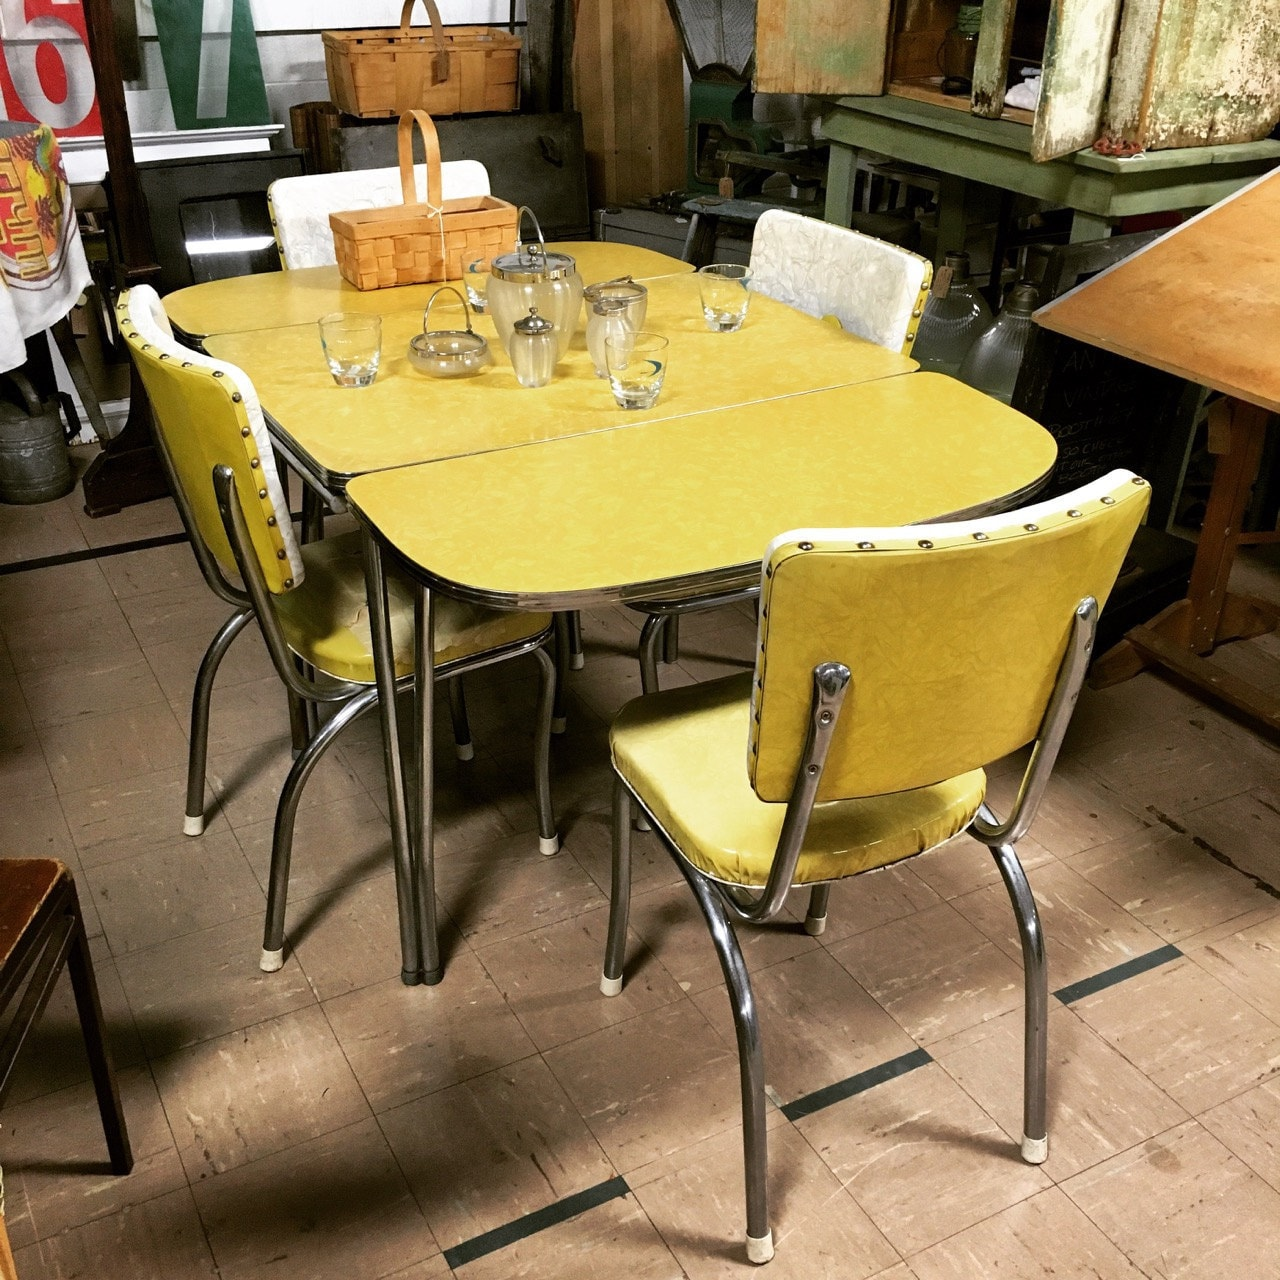 November Sale At School Days Antique Mall